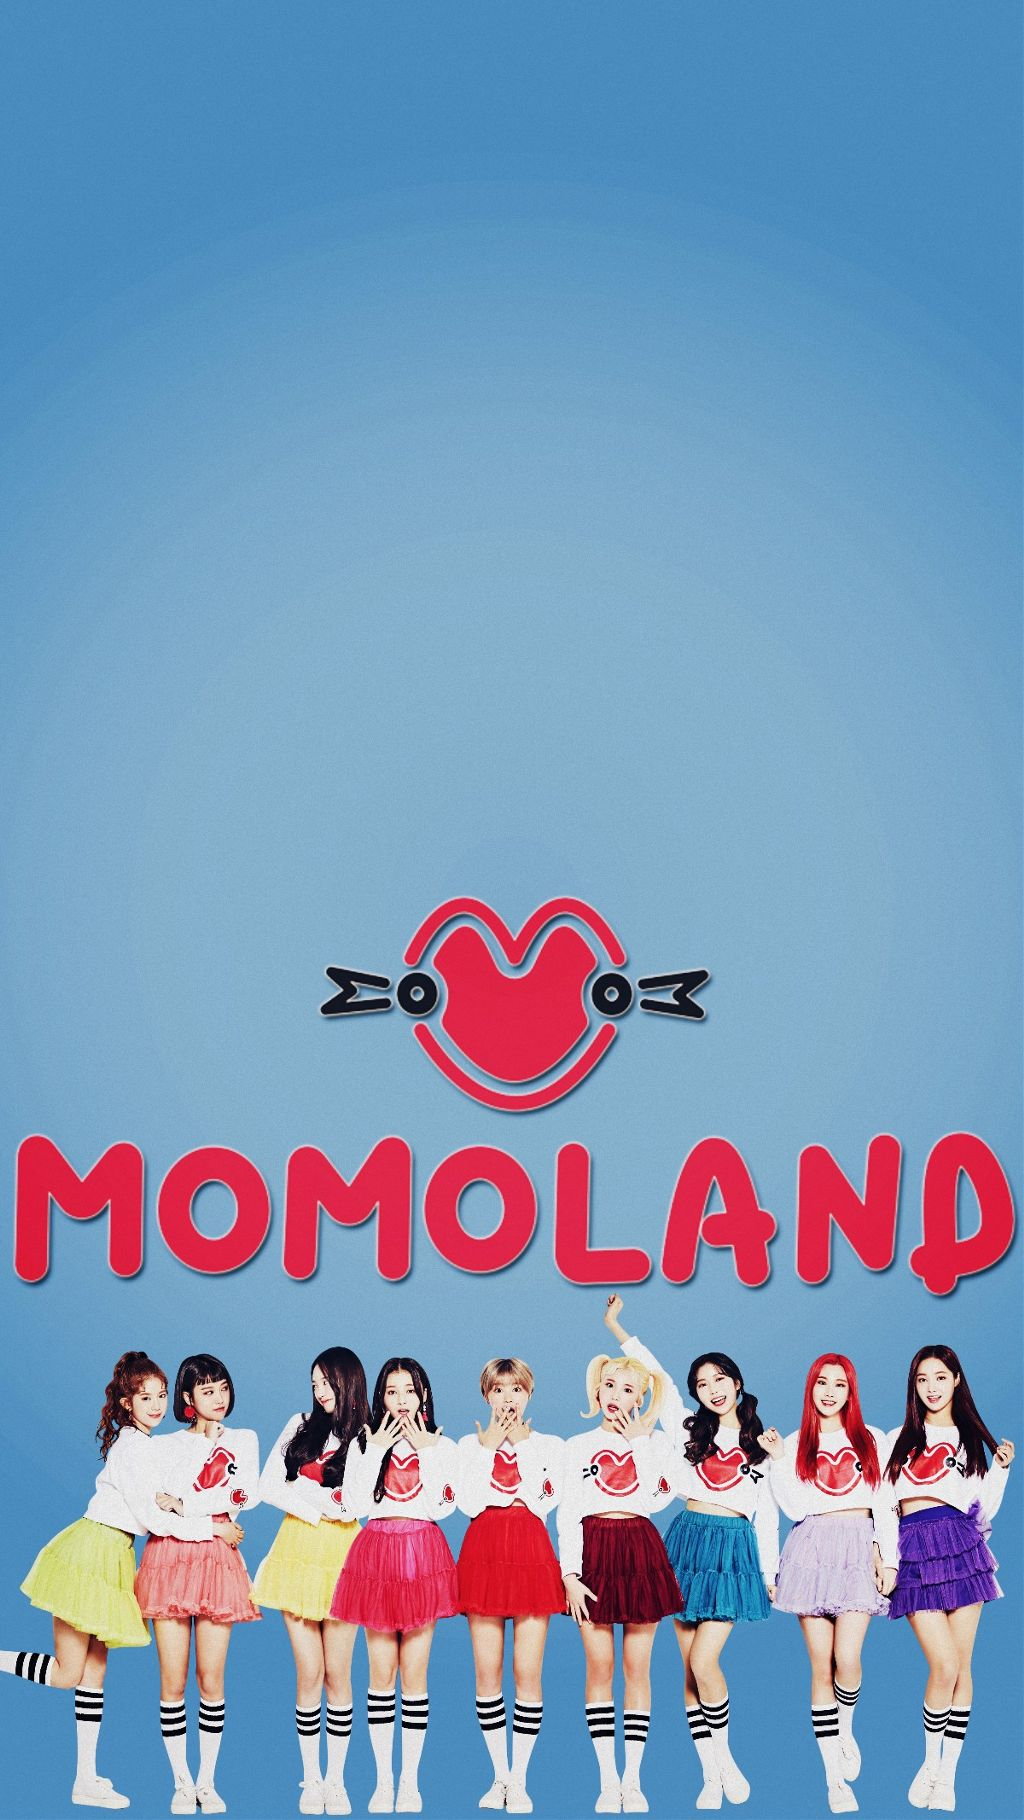 Momoland Kpop Wallpaper Iphone Jooe Hyebin Nancy Jane